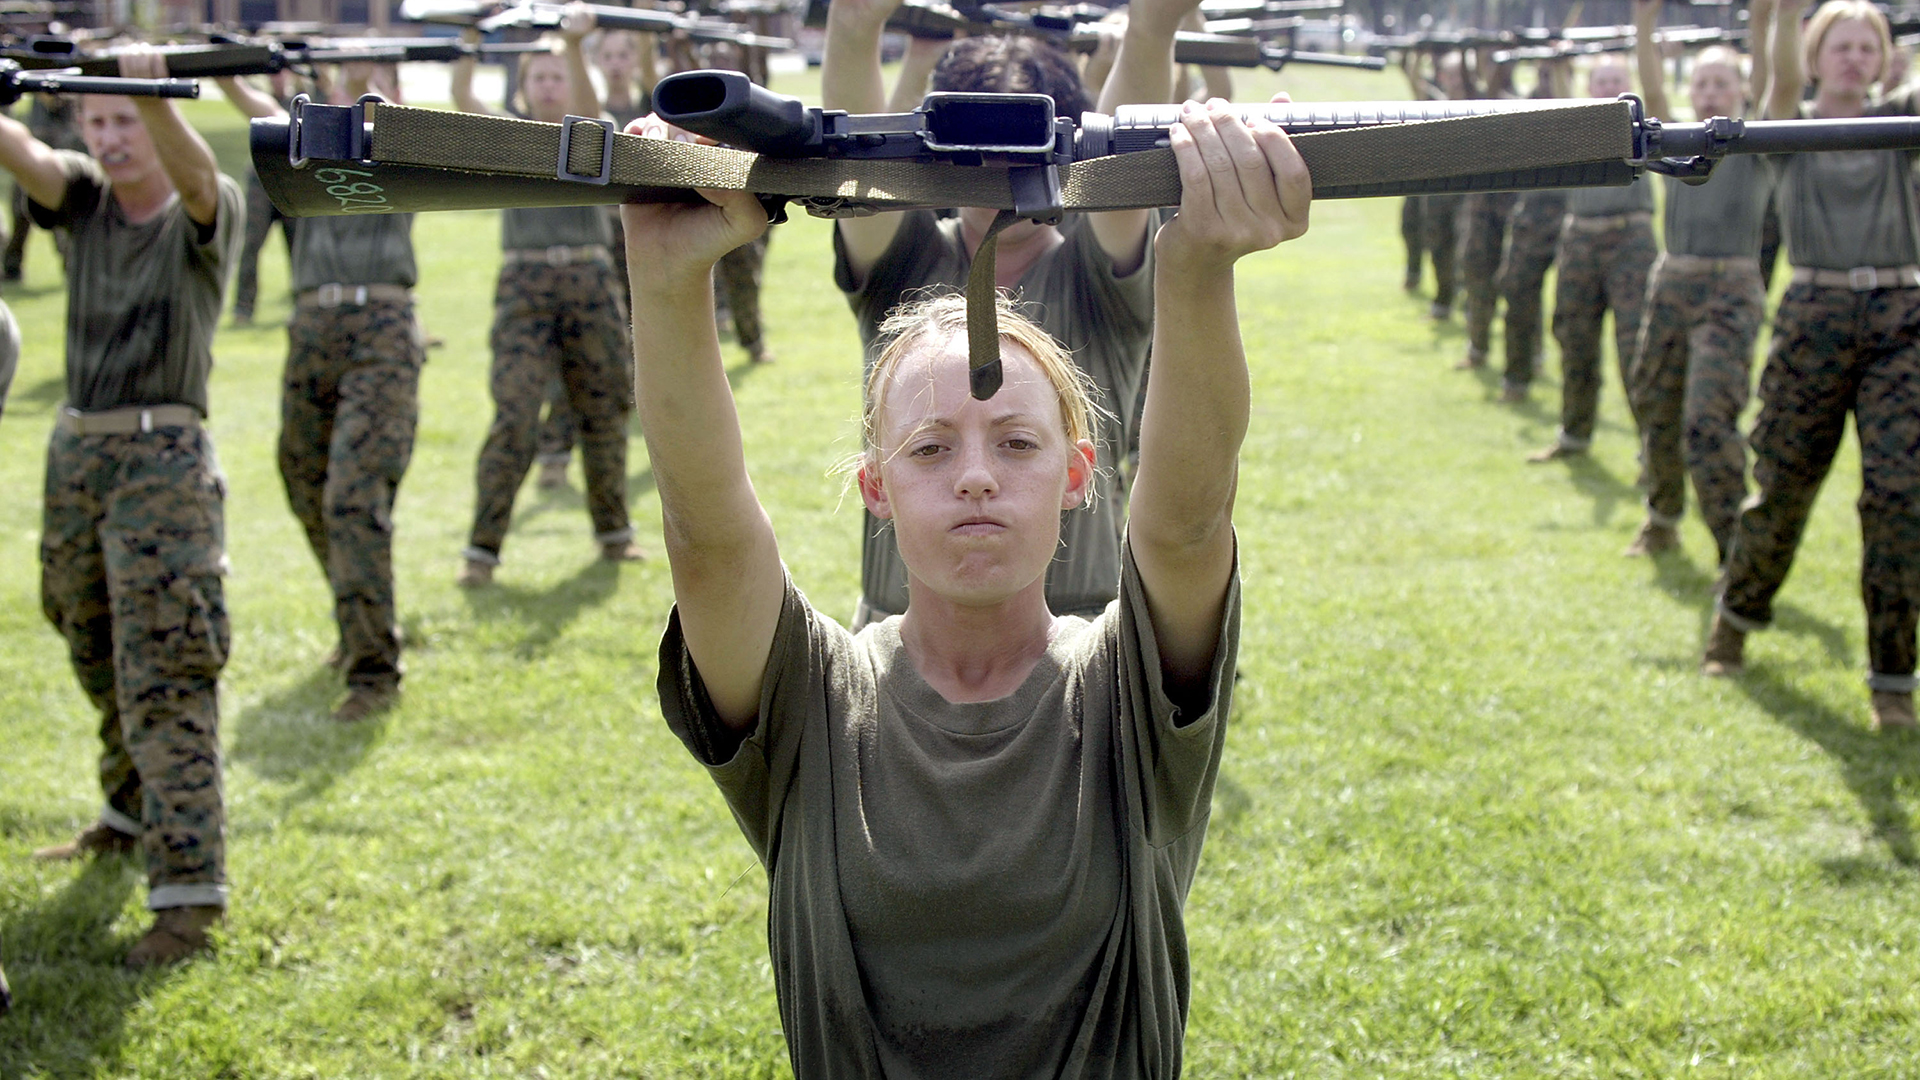 A female marine in combat training holds a gun up.